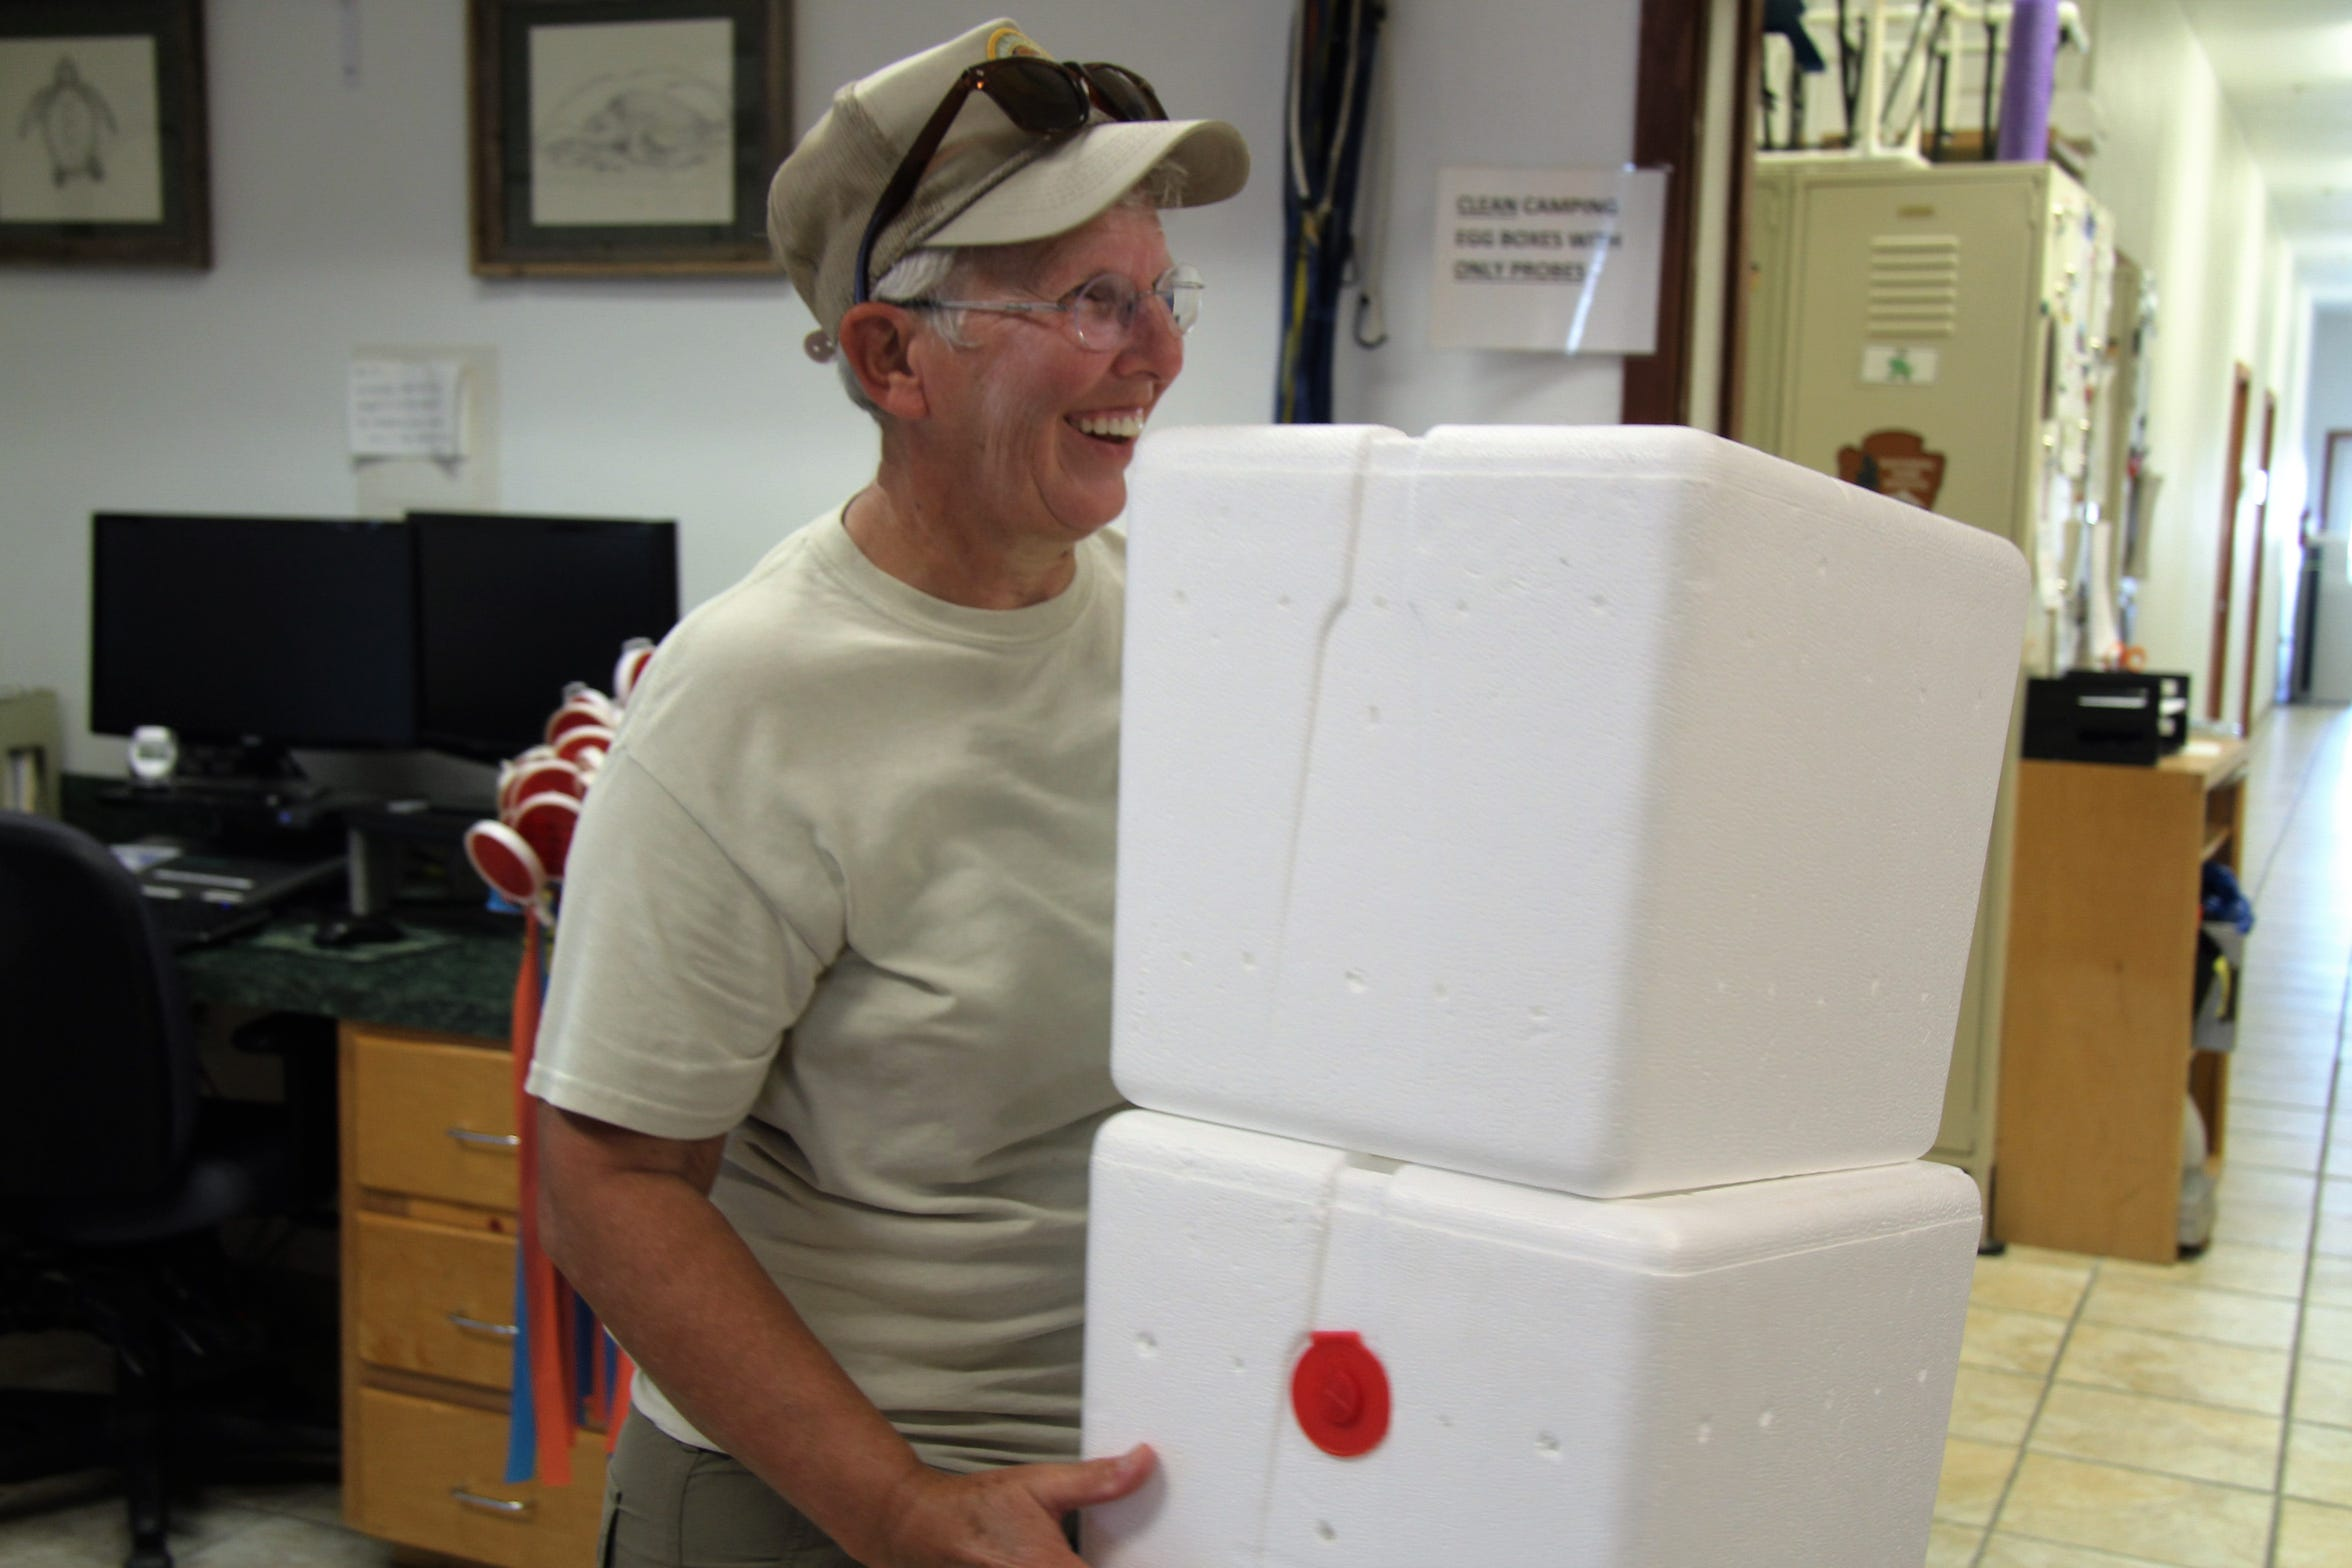 Cheerful volunteer Nancy Devlin spent hundreds of hours recycling styrofoam egg containers used at Padre Island National Seashore's Division for Sea Turtle Science and Recovery Program.